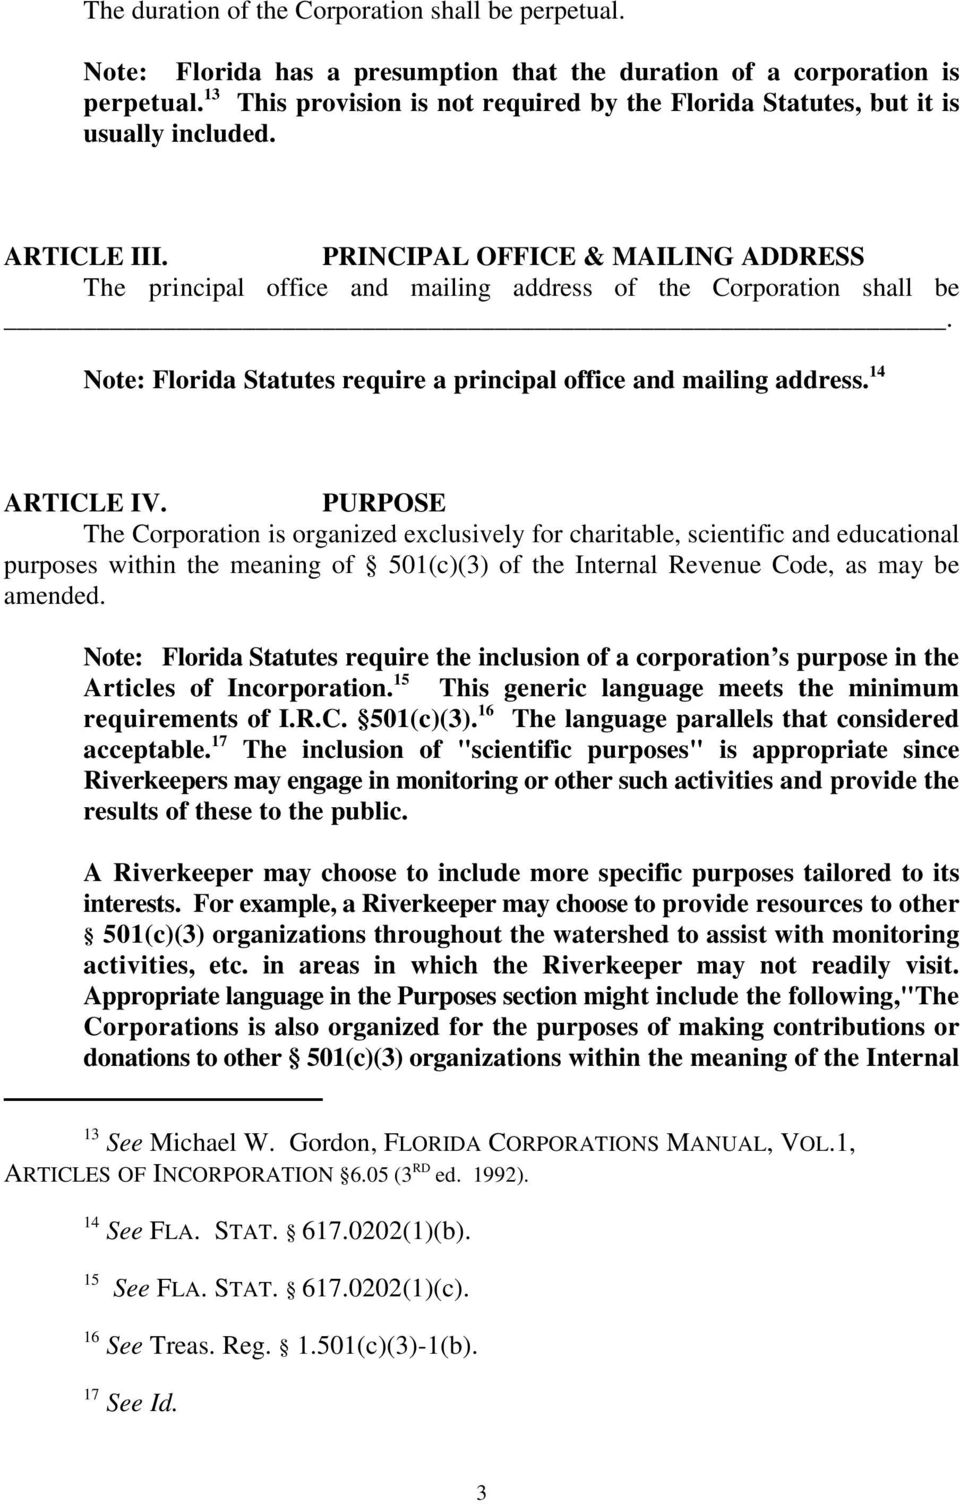 PRINCIPAL OFFICE & MAILING ADDRESS The principal office and mailing address of the Corporation shall be. 14 Note: Florida Statutes require a principal office and mailing address. ARTICLE IV.